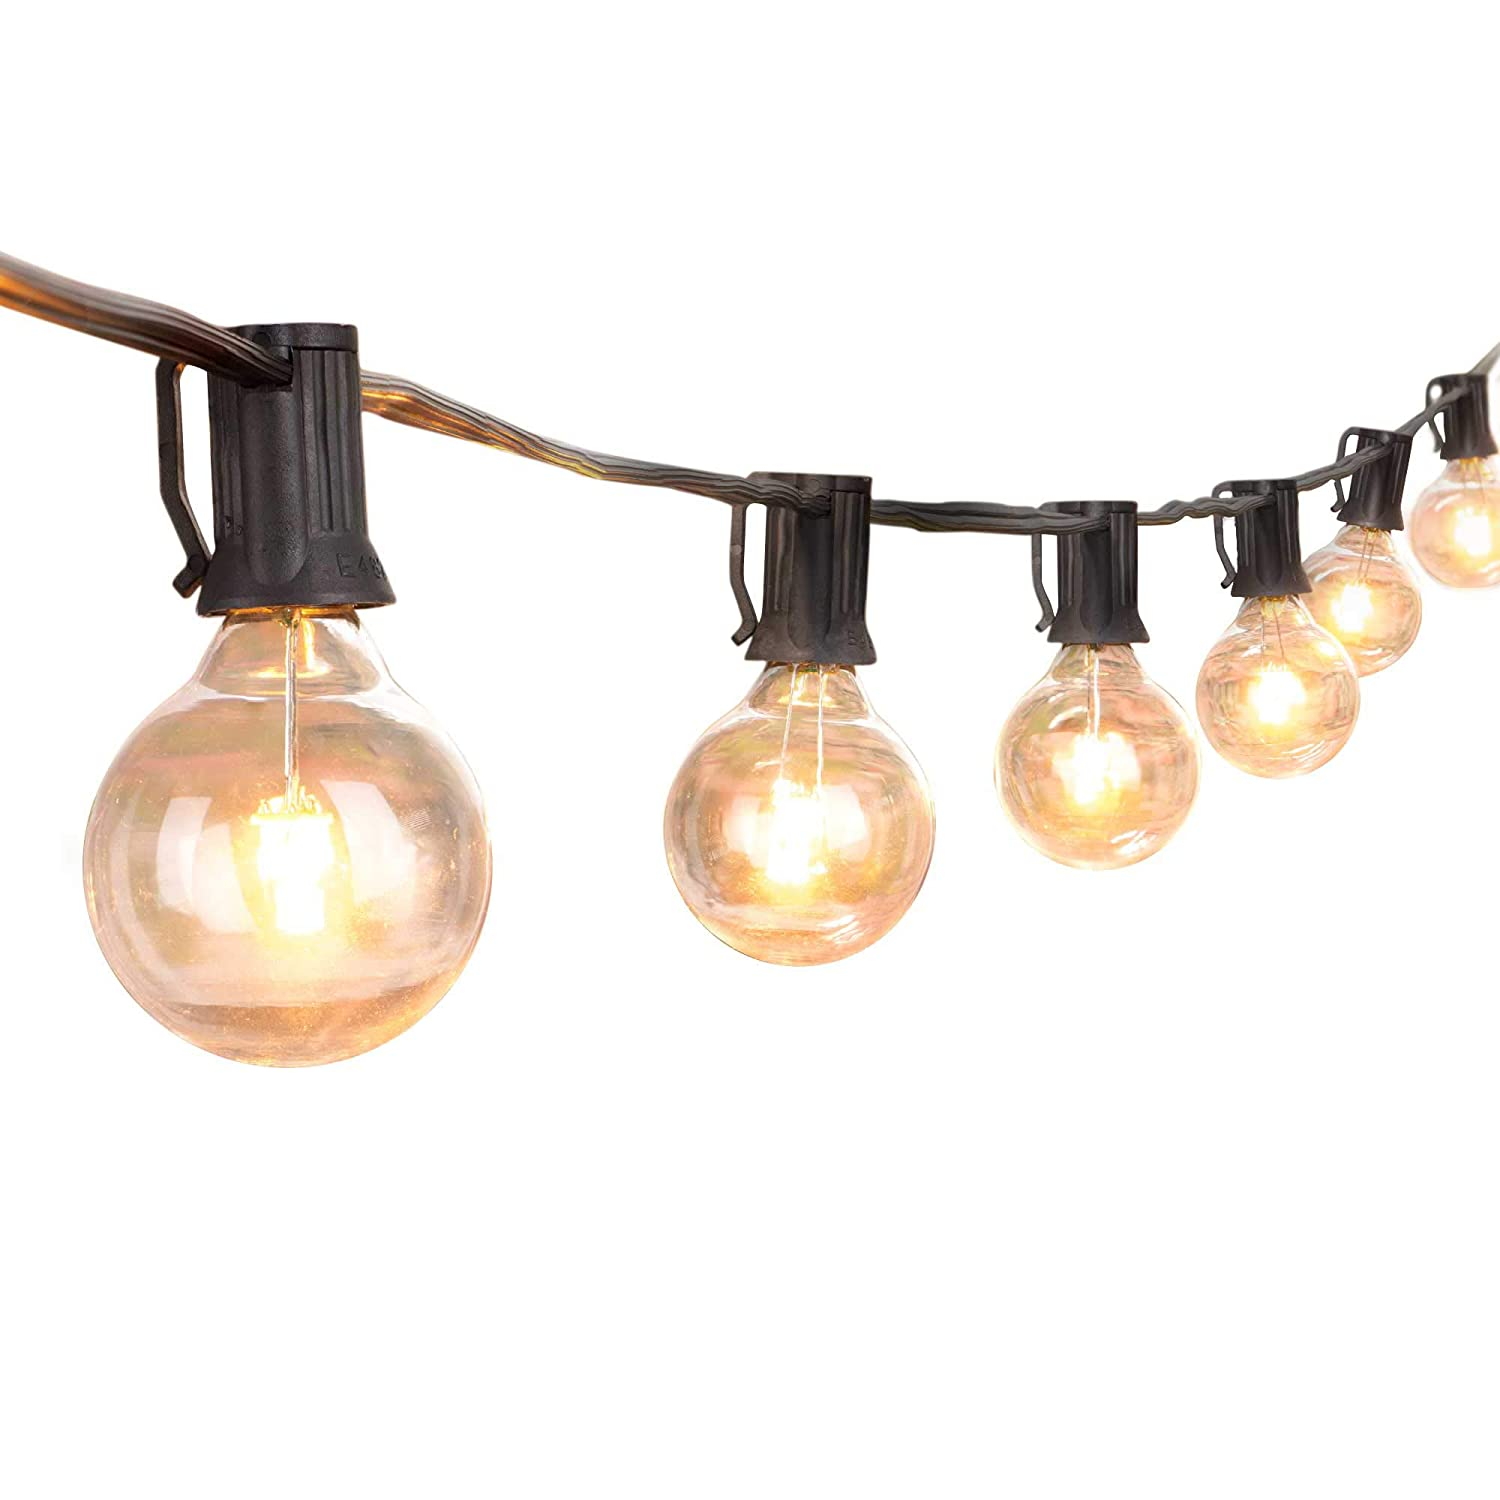 quality design ff191 0a9e1 25Ft LED Outdoor String Lights with 25 LED Warm Globe Bulbs-UL Listed G40  Patio Lights for Indoor/Outdoor Backyard Garden Bistro Gazebo Balcony  Market ...